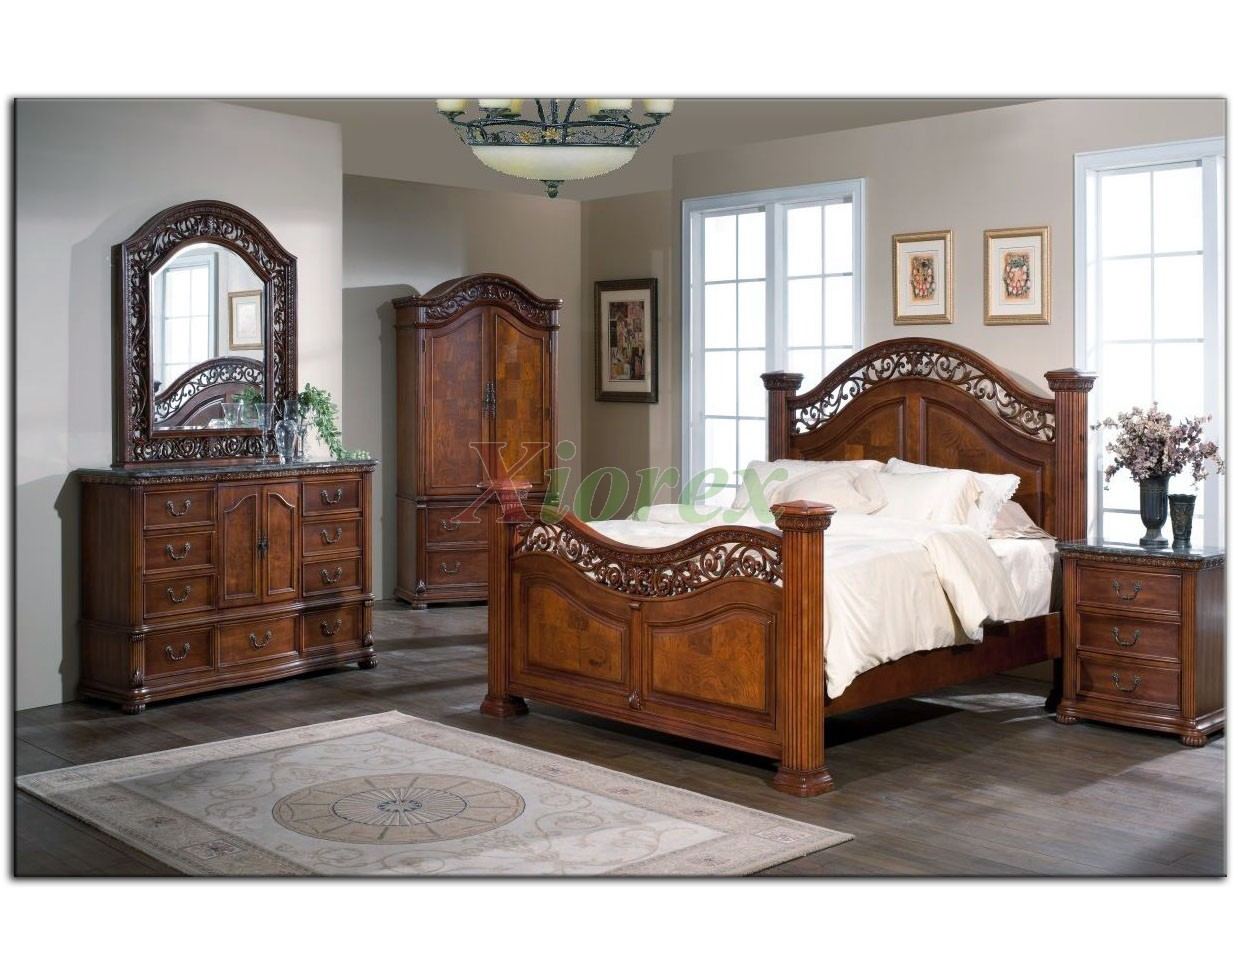 Bedroom Sets For Small Bedrooms: Poster Bedroom Furniture Set 114